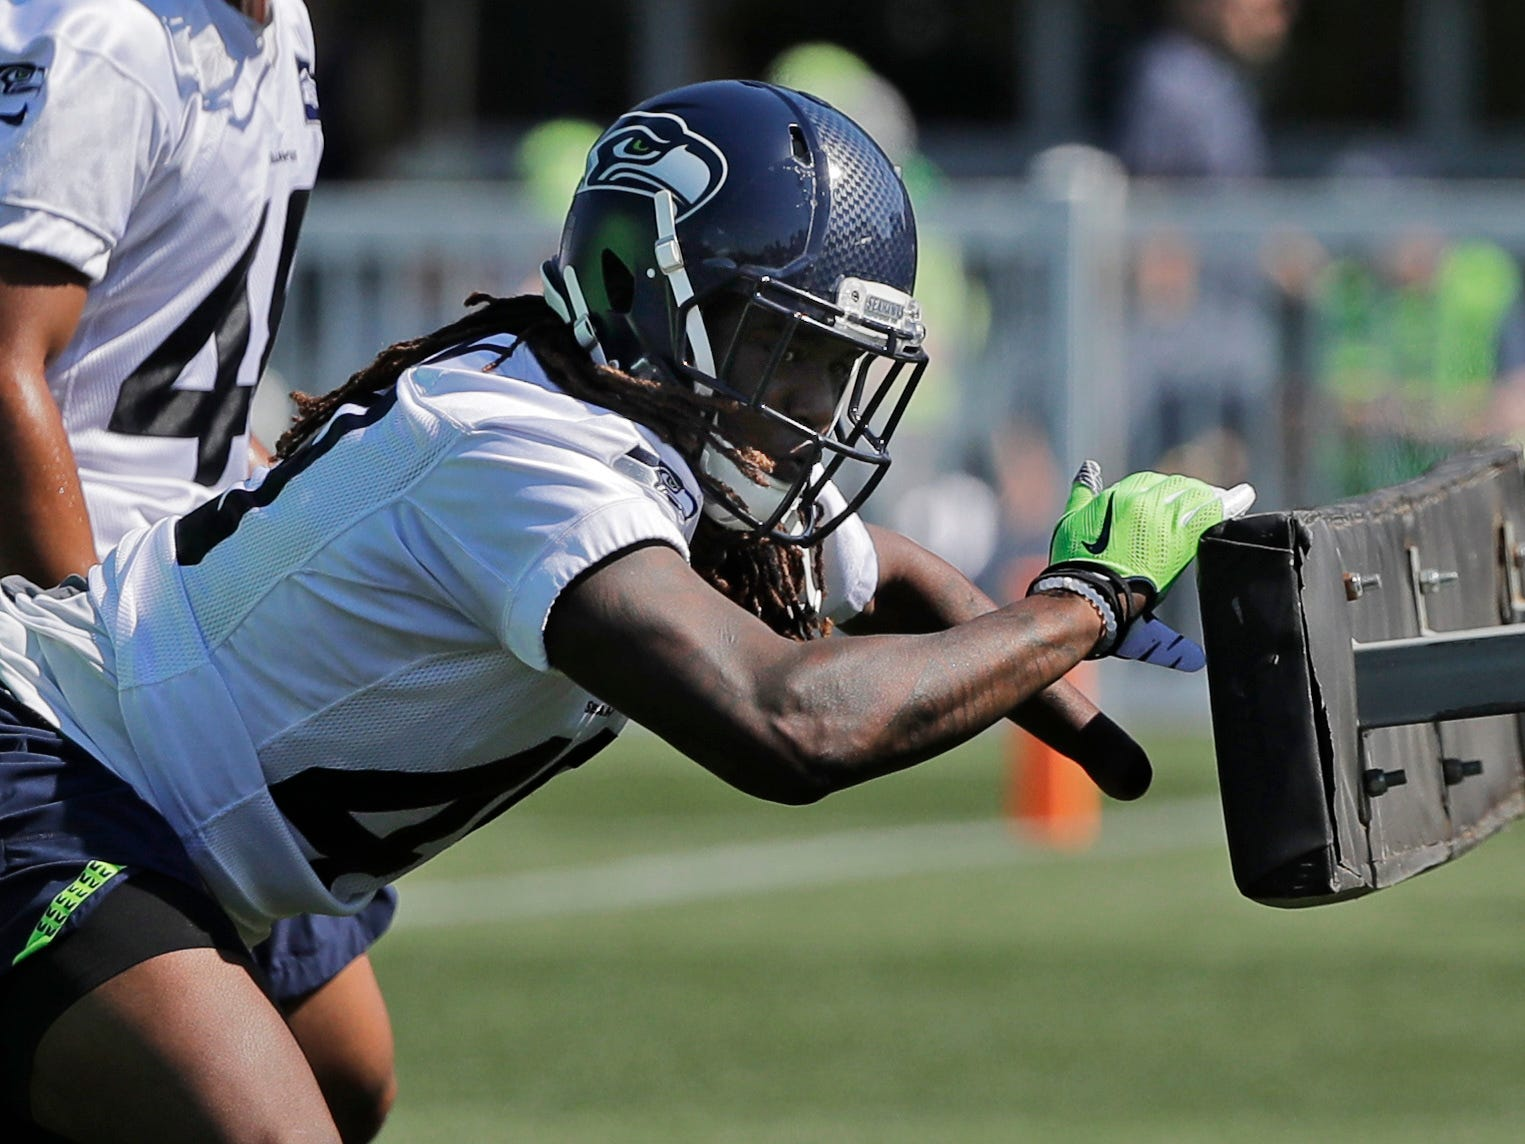 Seattle Seahawks linebacker Shaquem Griffin hits a blocking sled during NFL football training camp, Thursday, July 26, 2018, in Renton, Wash. (AP Photo/Ted S. Warren)